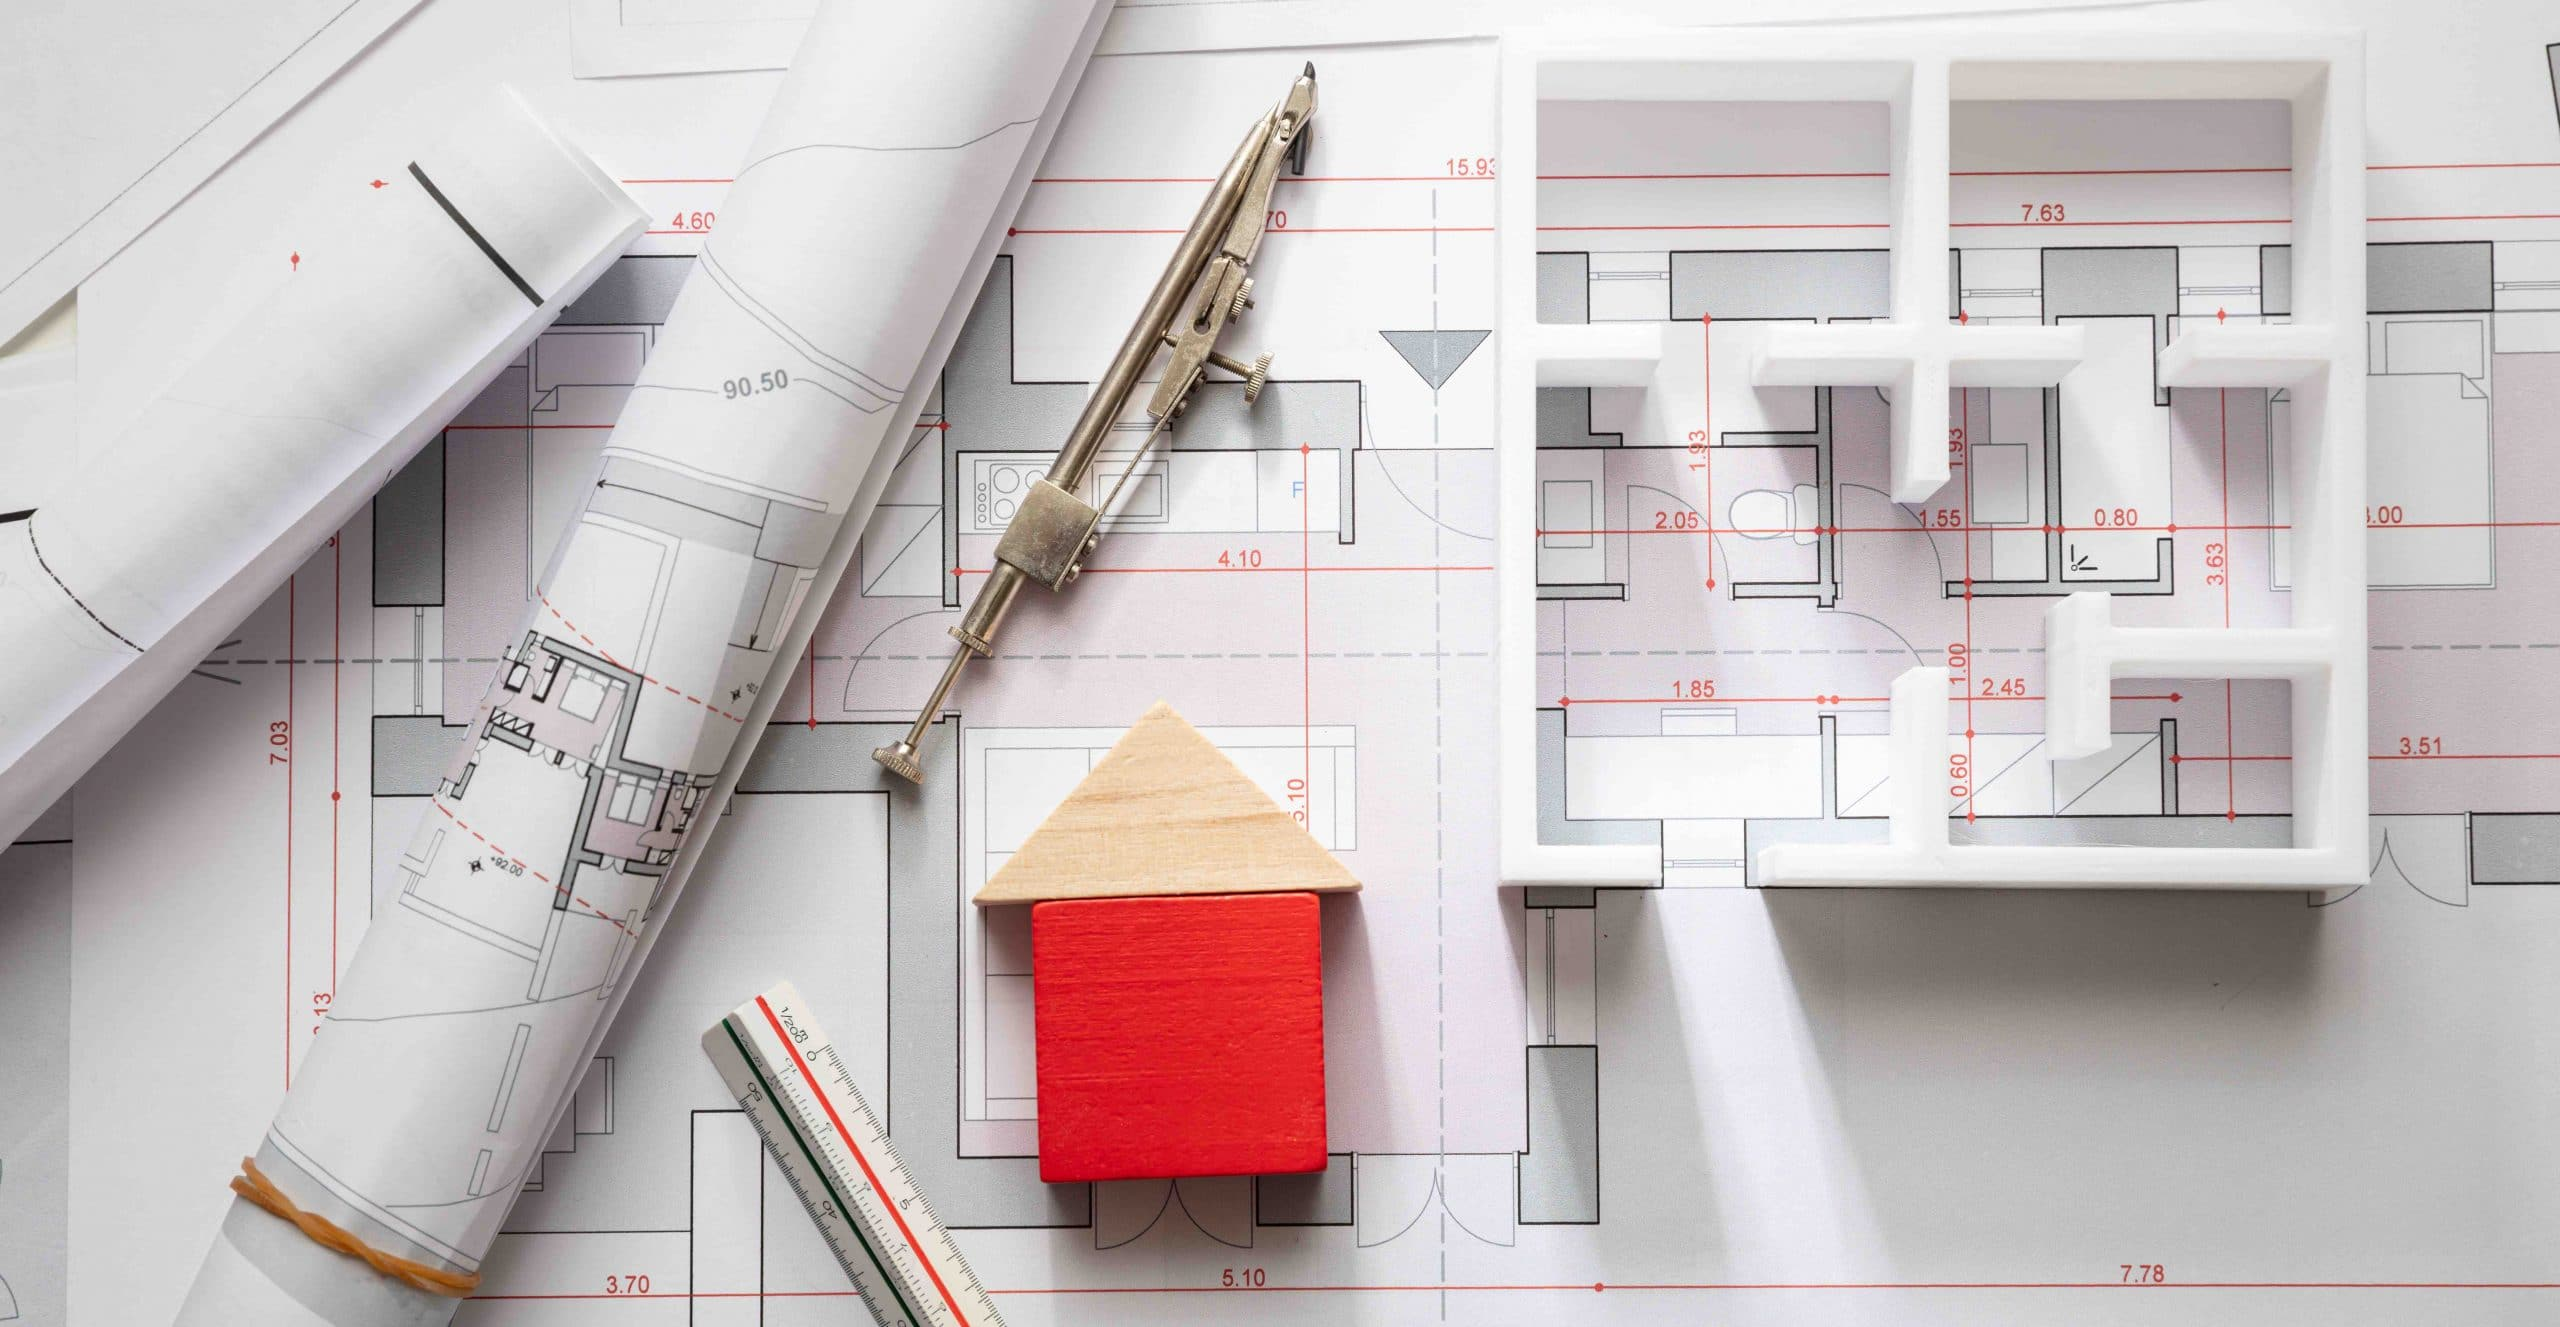 House model and blueprint plans, residential building project architectural design, banner